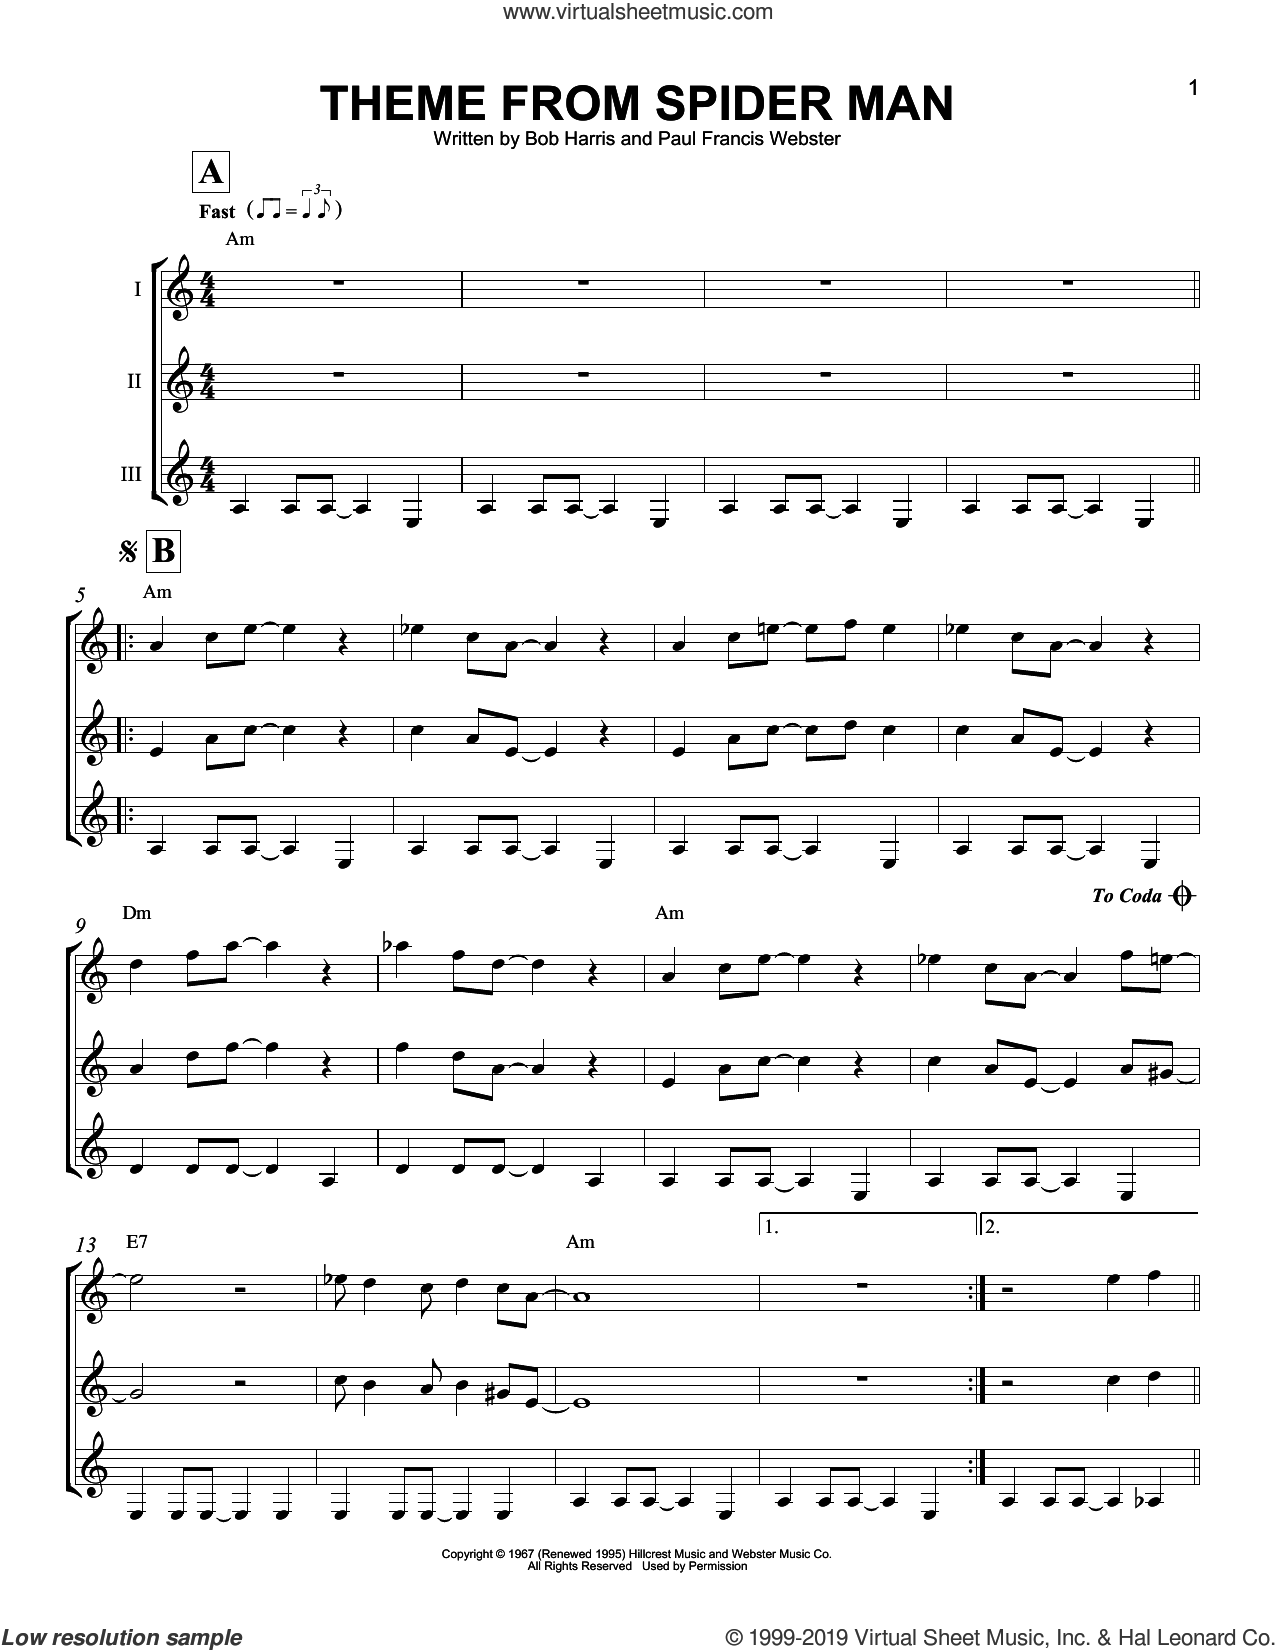 Theme From Spider-Man sheet music for guitar ensemble by Paul Francis Webster, Bob Harris and Bob Harris & Paul Francis Webster, intermediate skill level